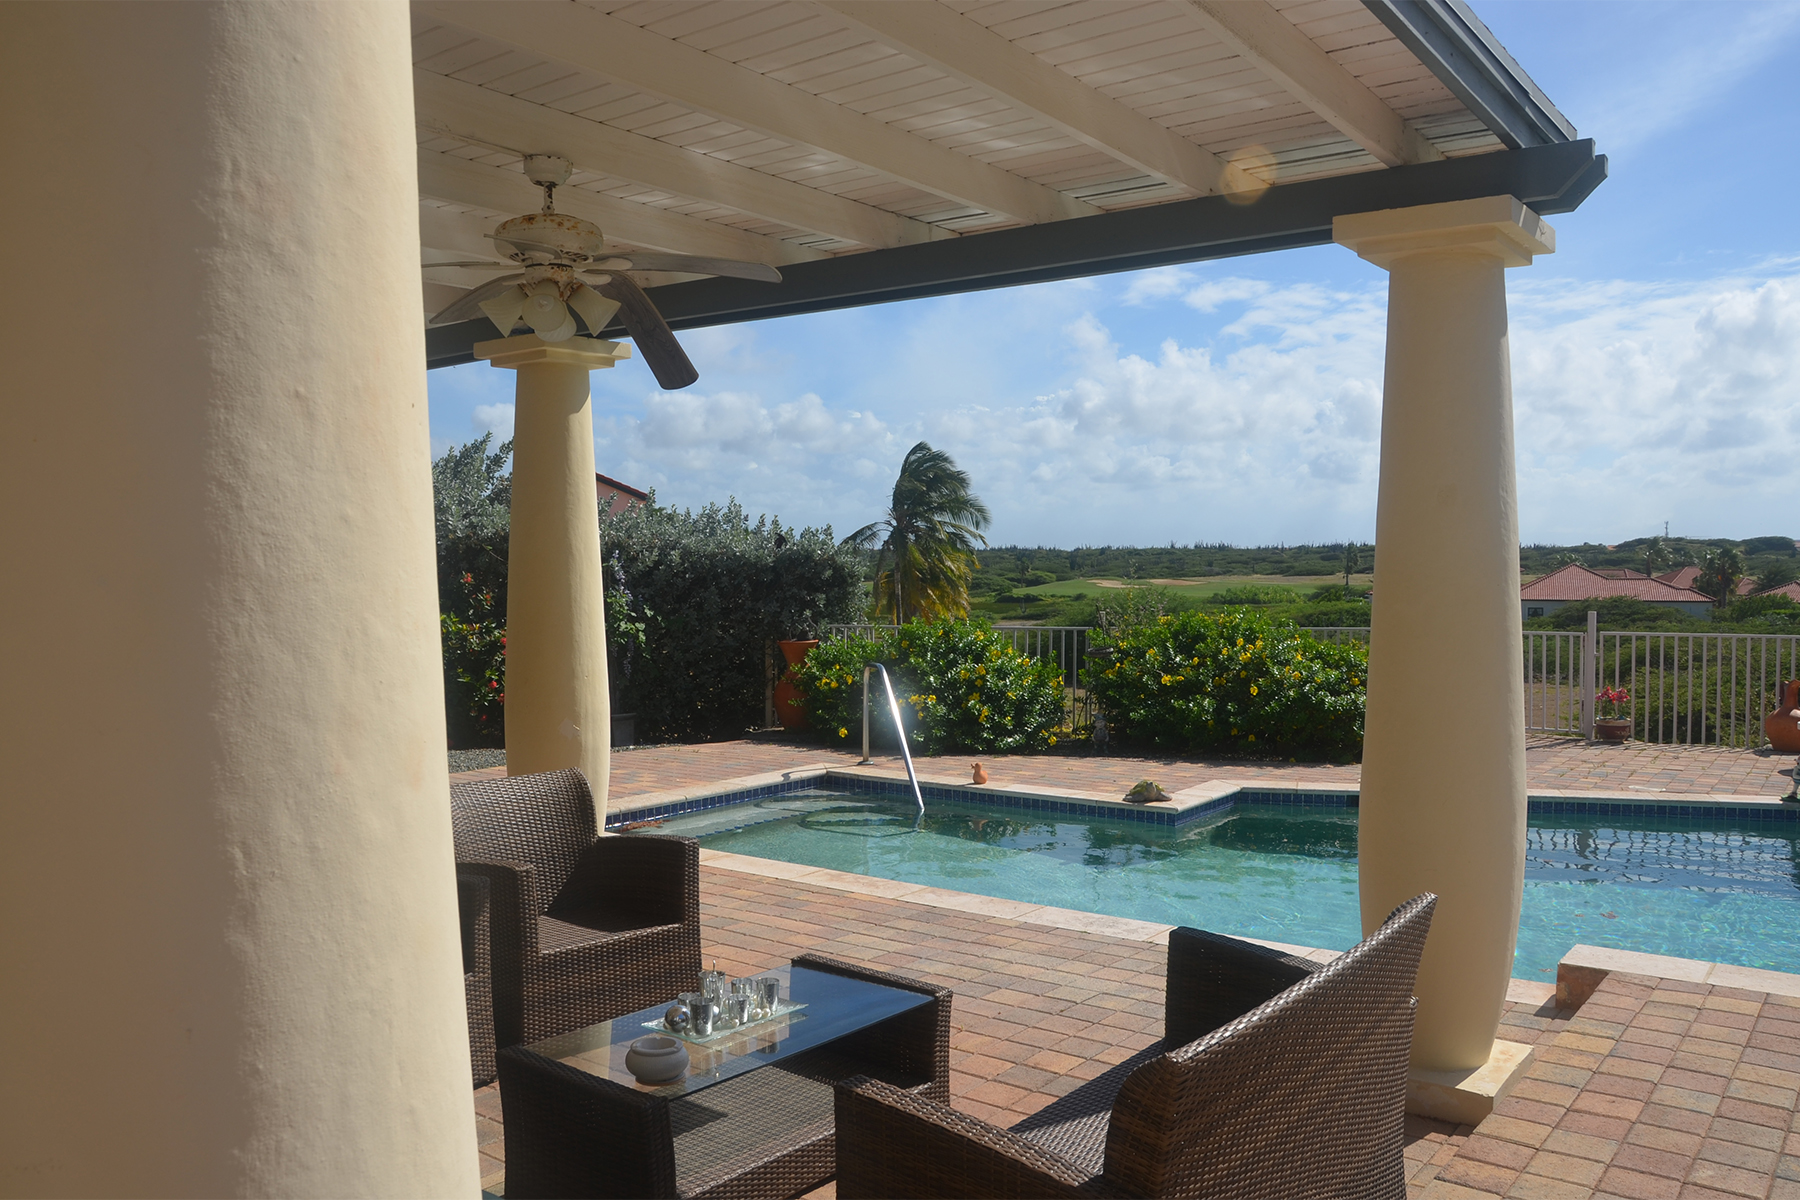 Additional photo for property listing at MesaVista38 Caya Mesa Bista 38 Malmok, Aruba 21000 Aruba